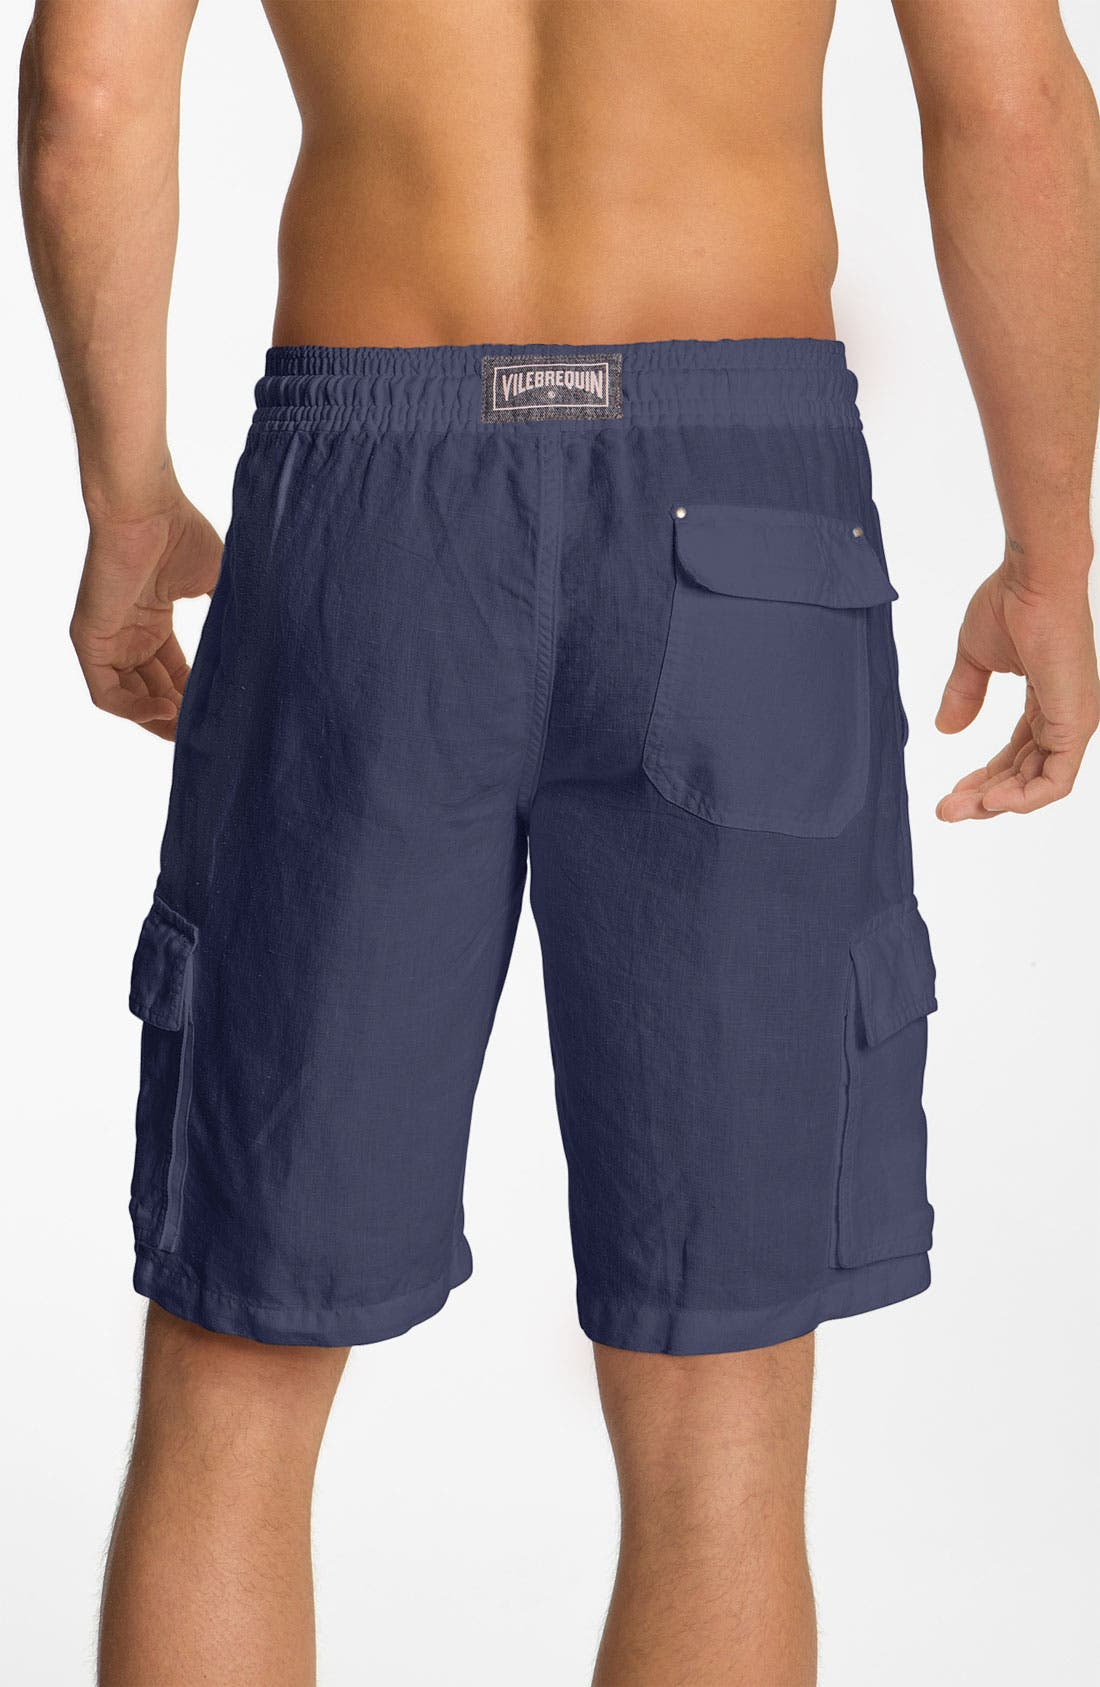 Alternate Image 2  - Vilebrequin 'Baie' Linen Shorts